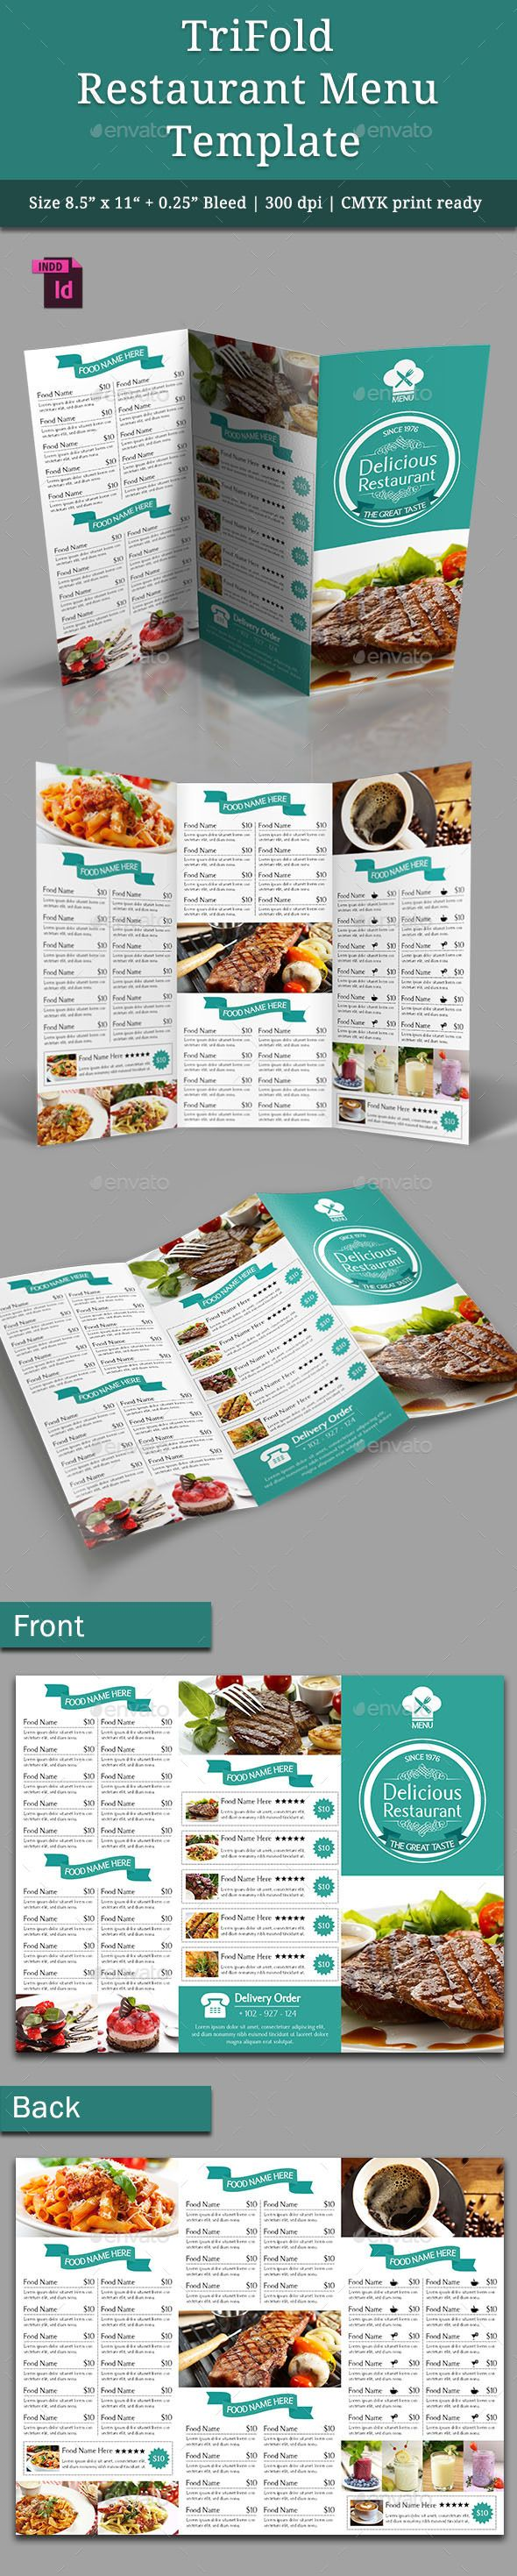 TriFold Restaurant Menu Template Vol 4 The